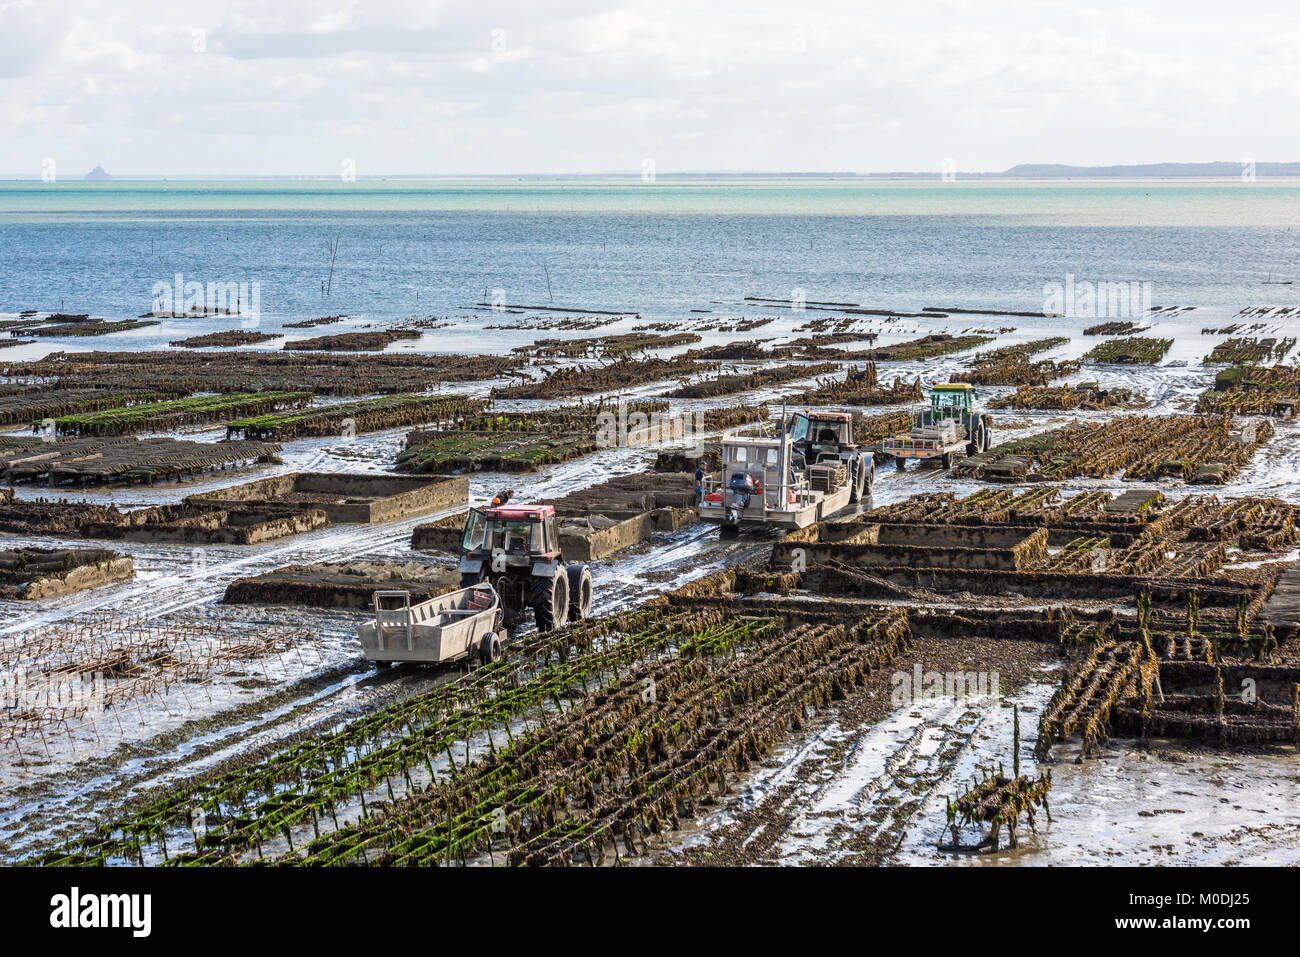 Oyster farms in Cancale, Brittany, France Stock Photo